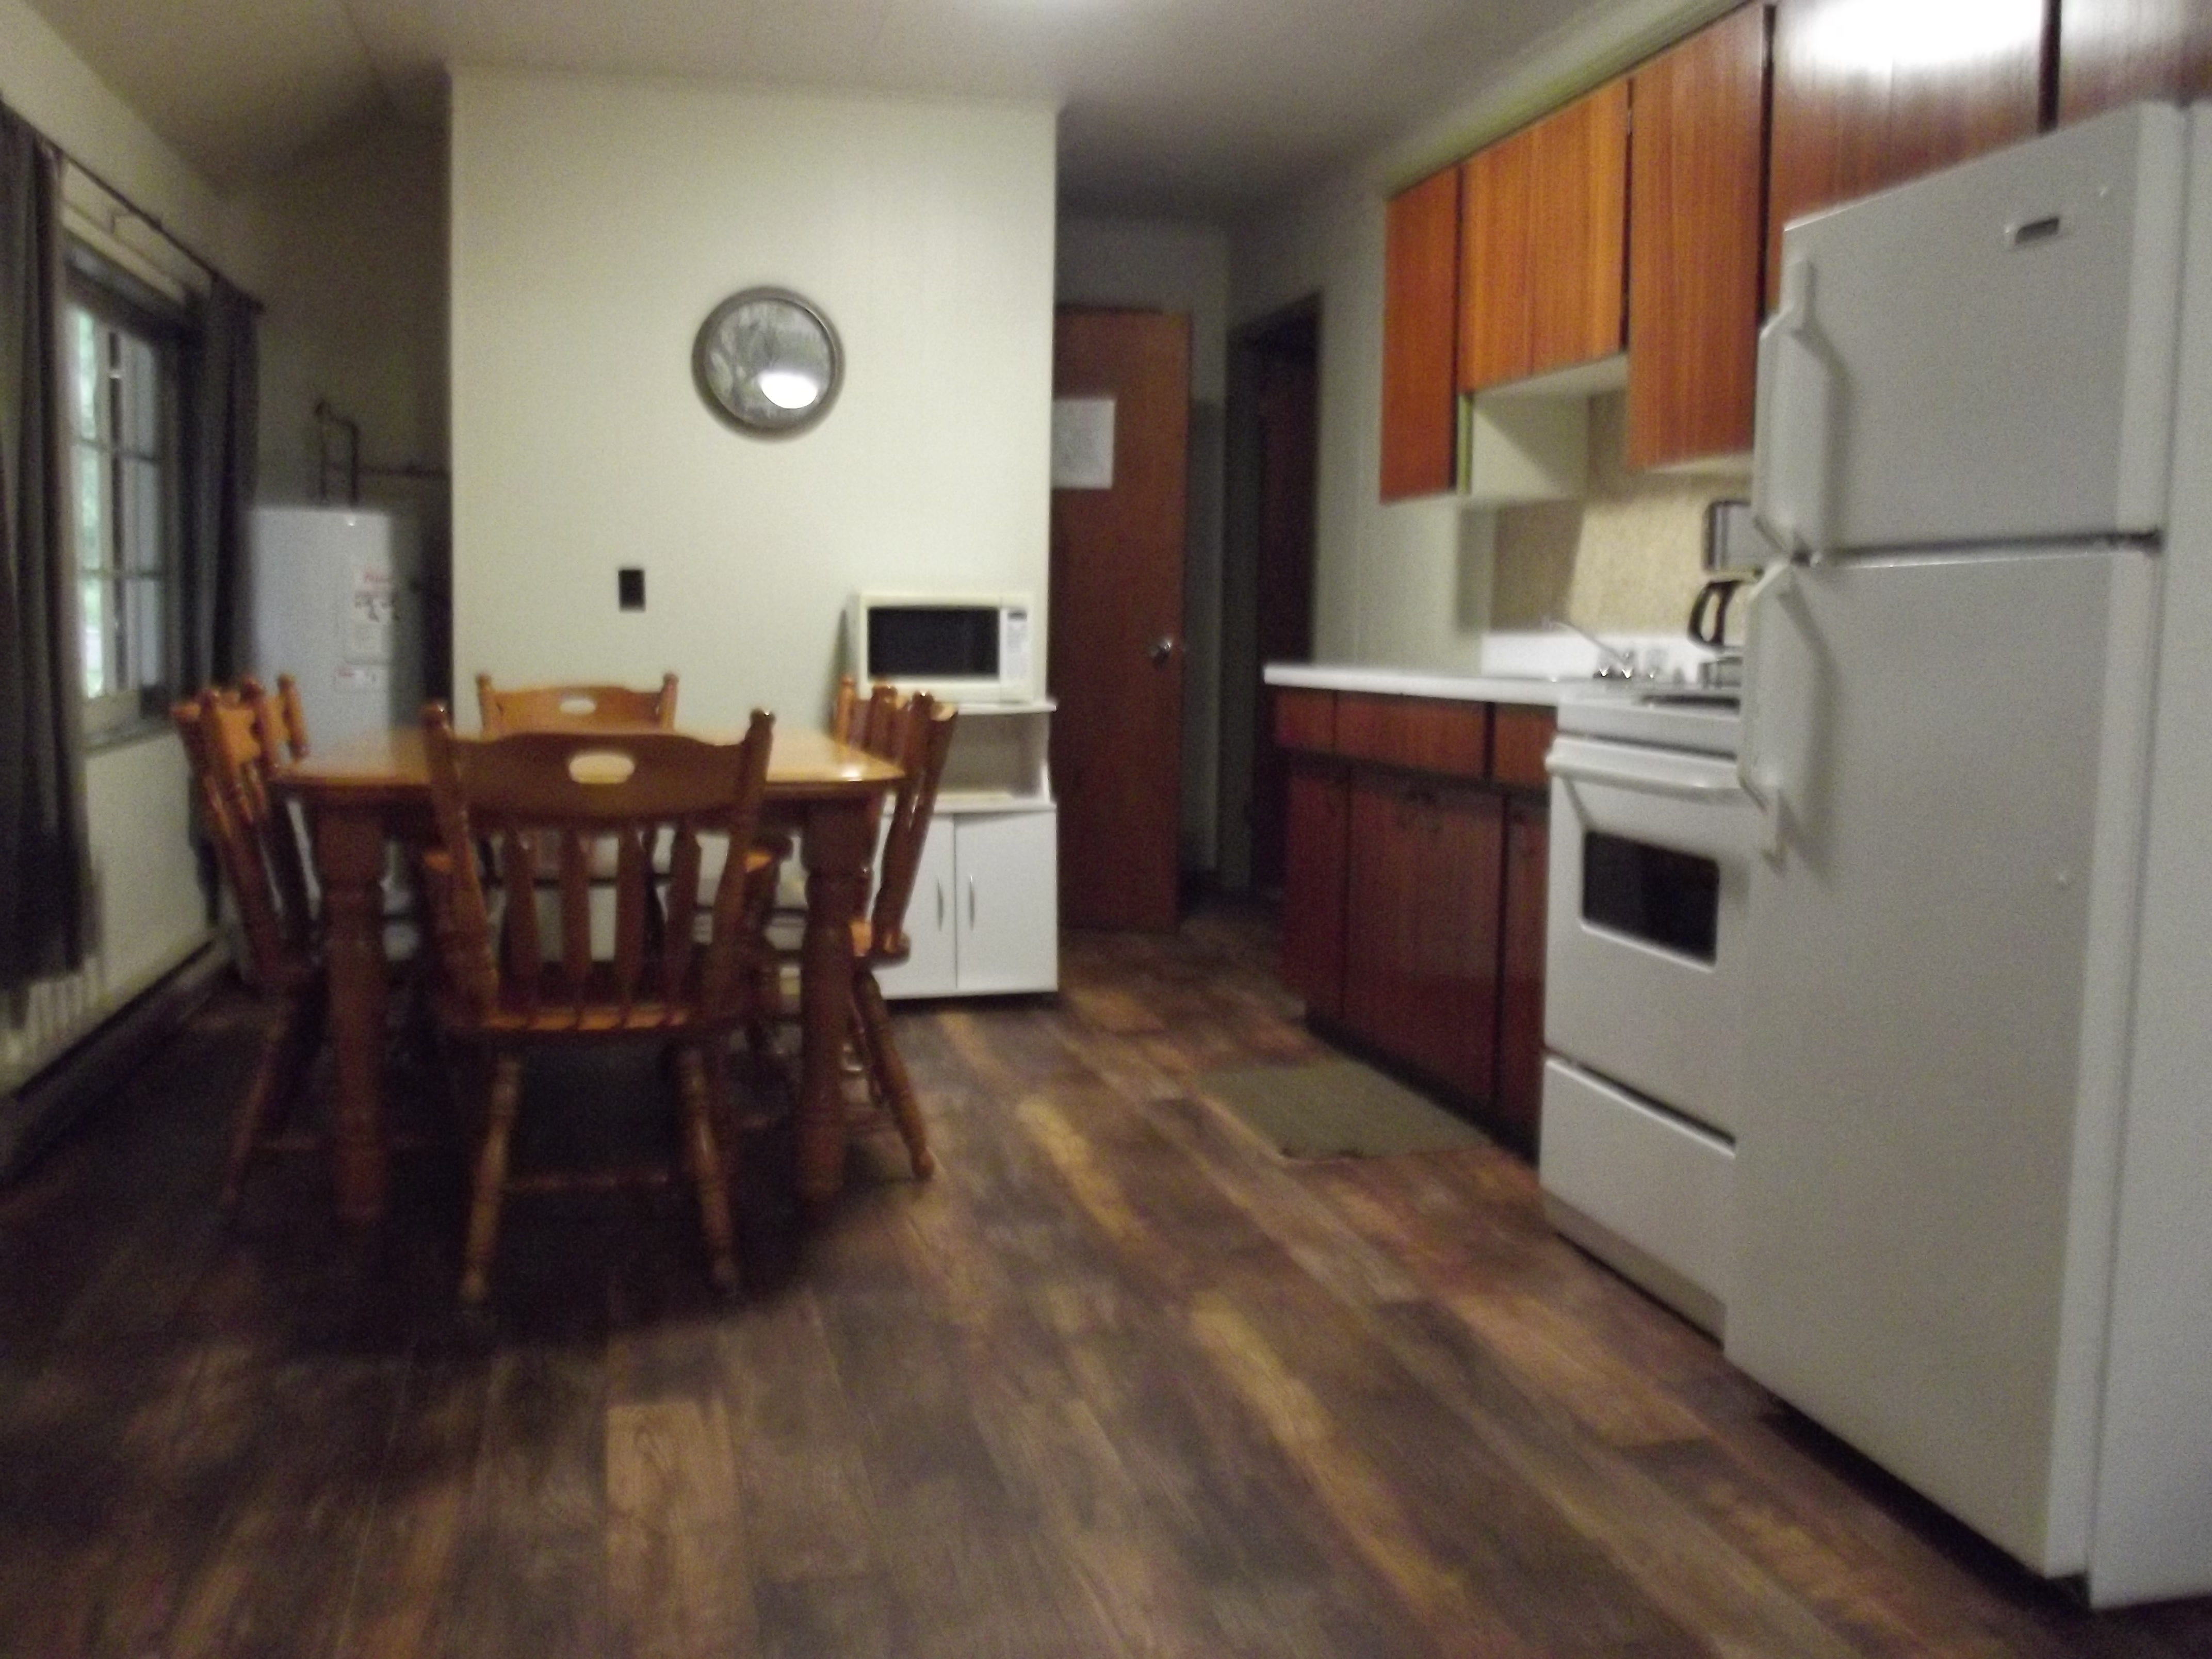 3 Bedroom - Kitchen